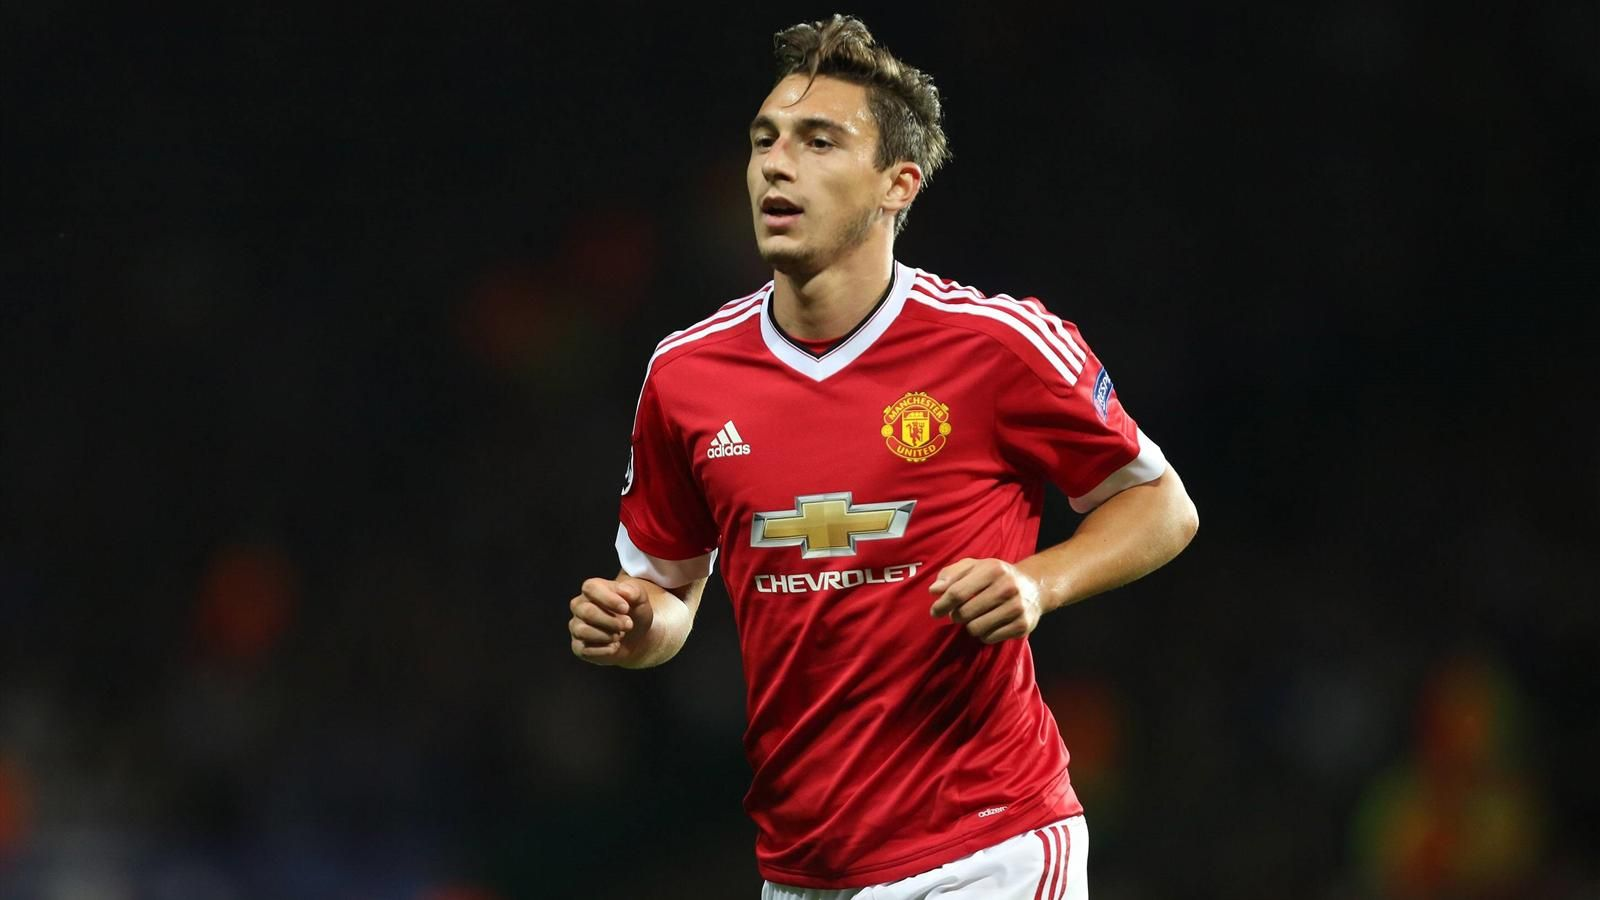 Darmian opens up on Man United players, Mourinho relationship